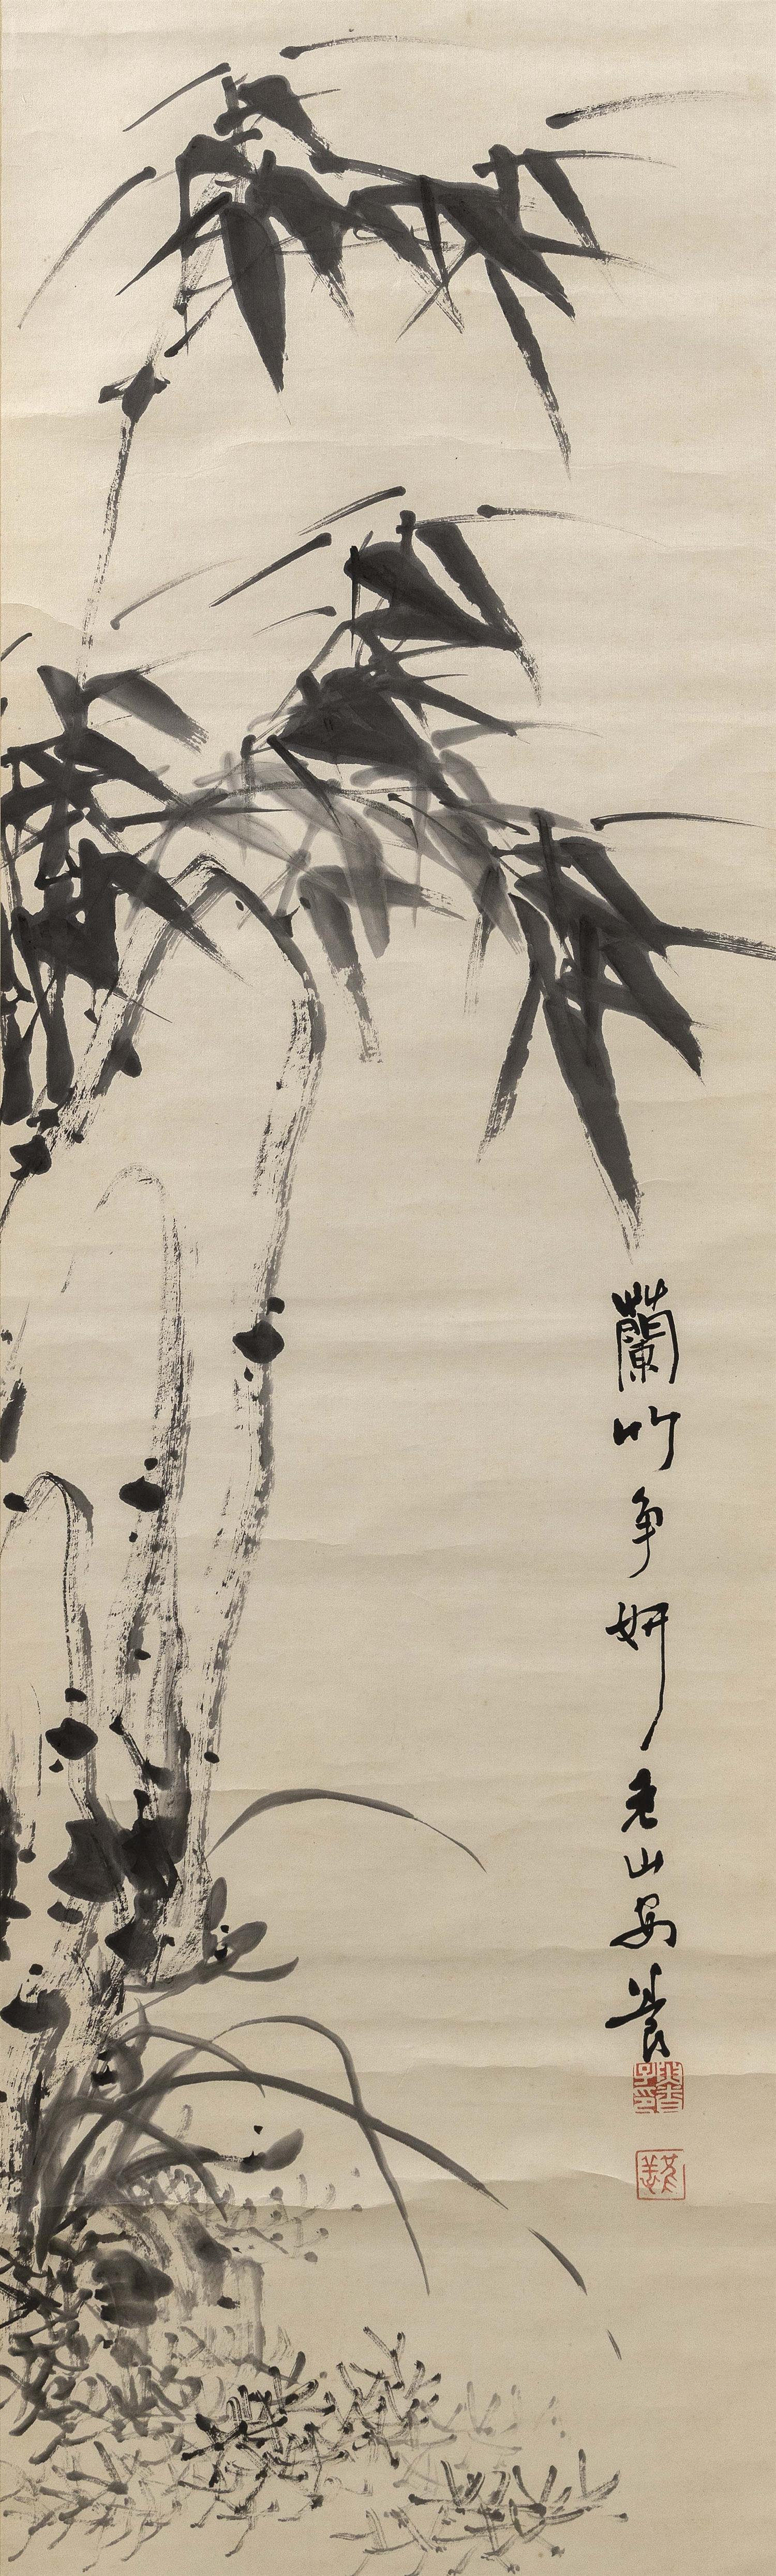 """JAPANESE SCROLL PAINTING ON PAPER BY YASUDA ROZAN (1830-1882) Depicts bamboo. Marked with calligraphy and seal marks. 45"""" x 13.25""""...."""